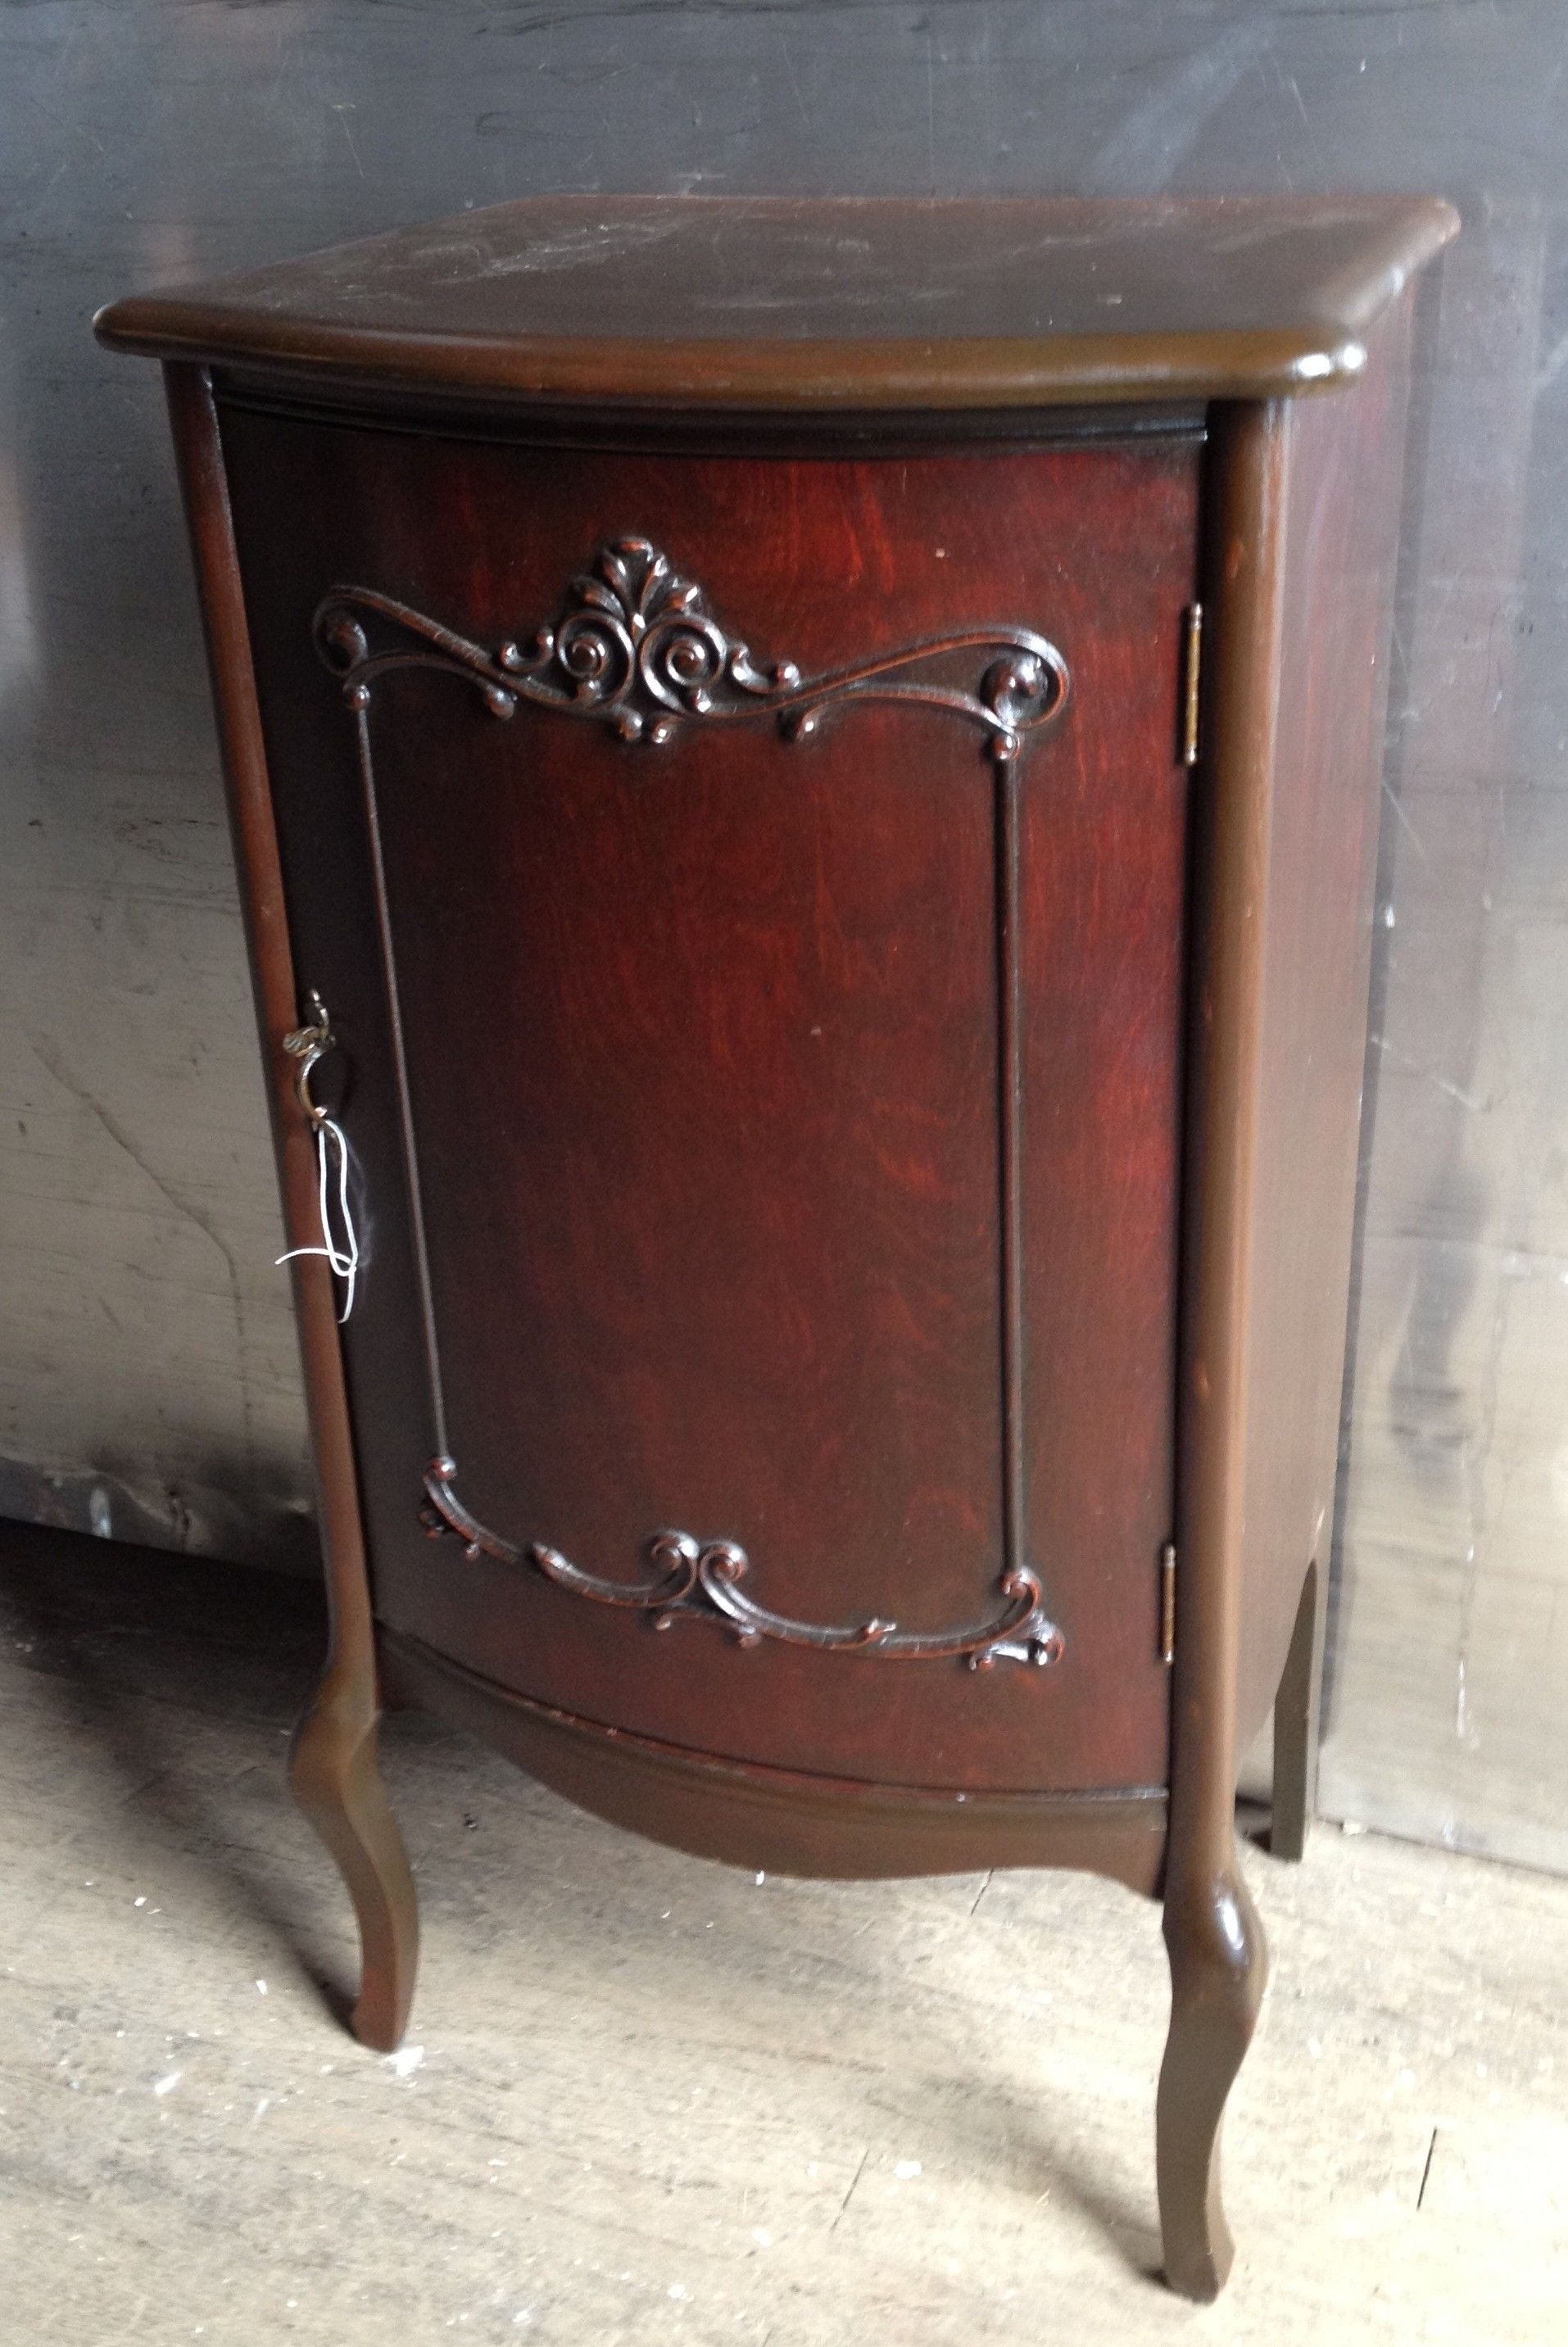 Antique Mahogany Music Cabinet $145   Chicago Http://furnishly.com/antique